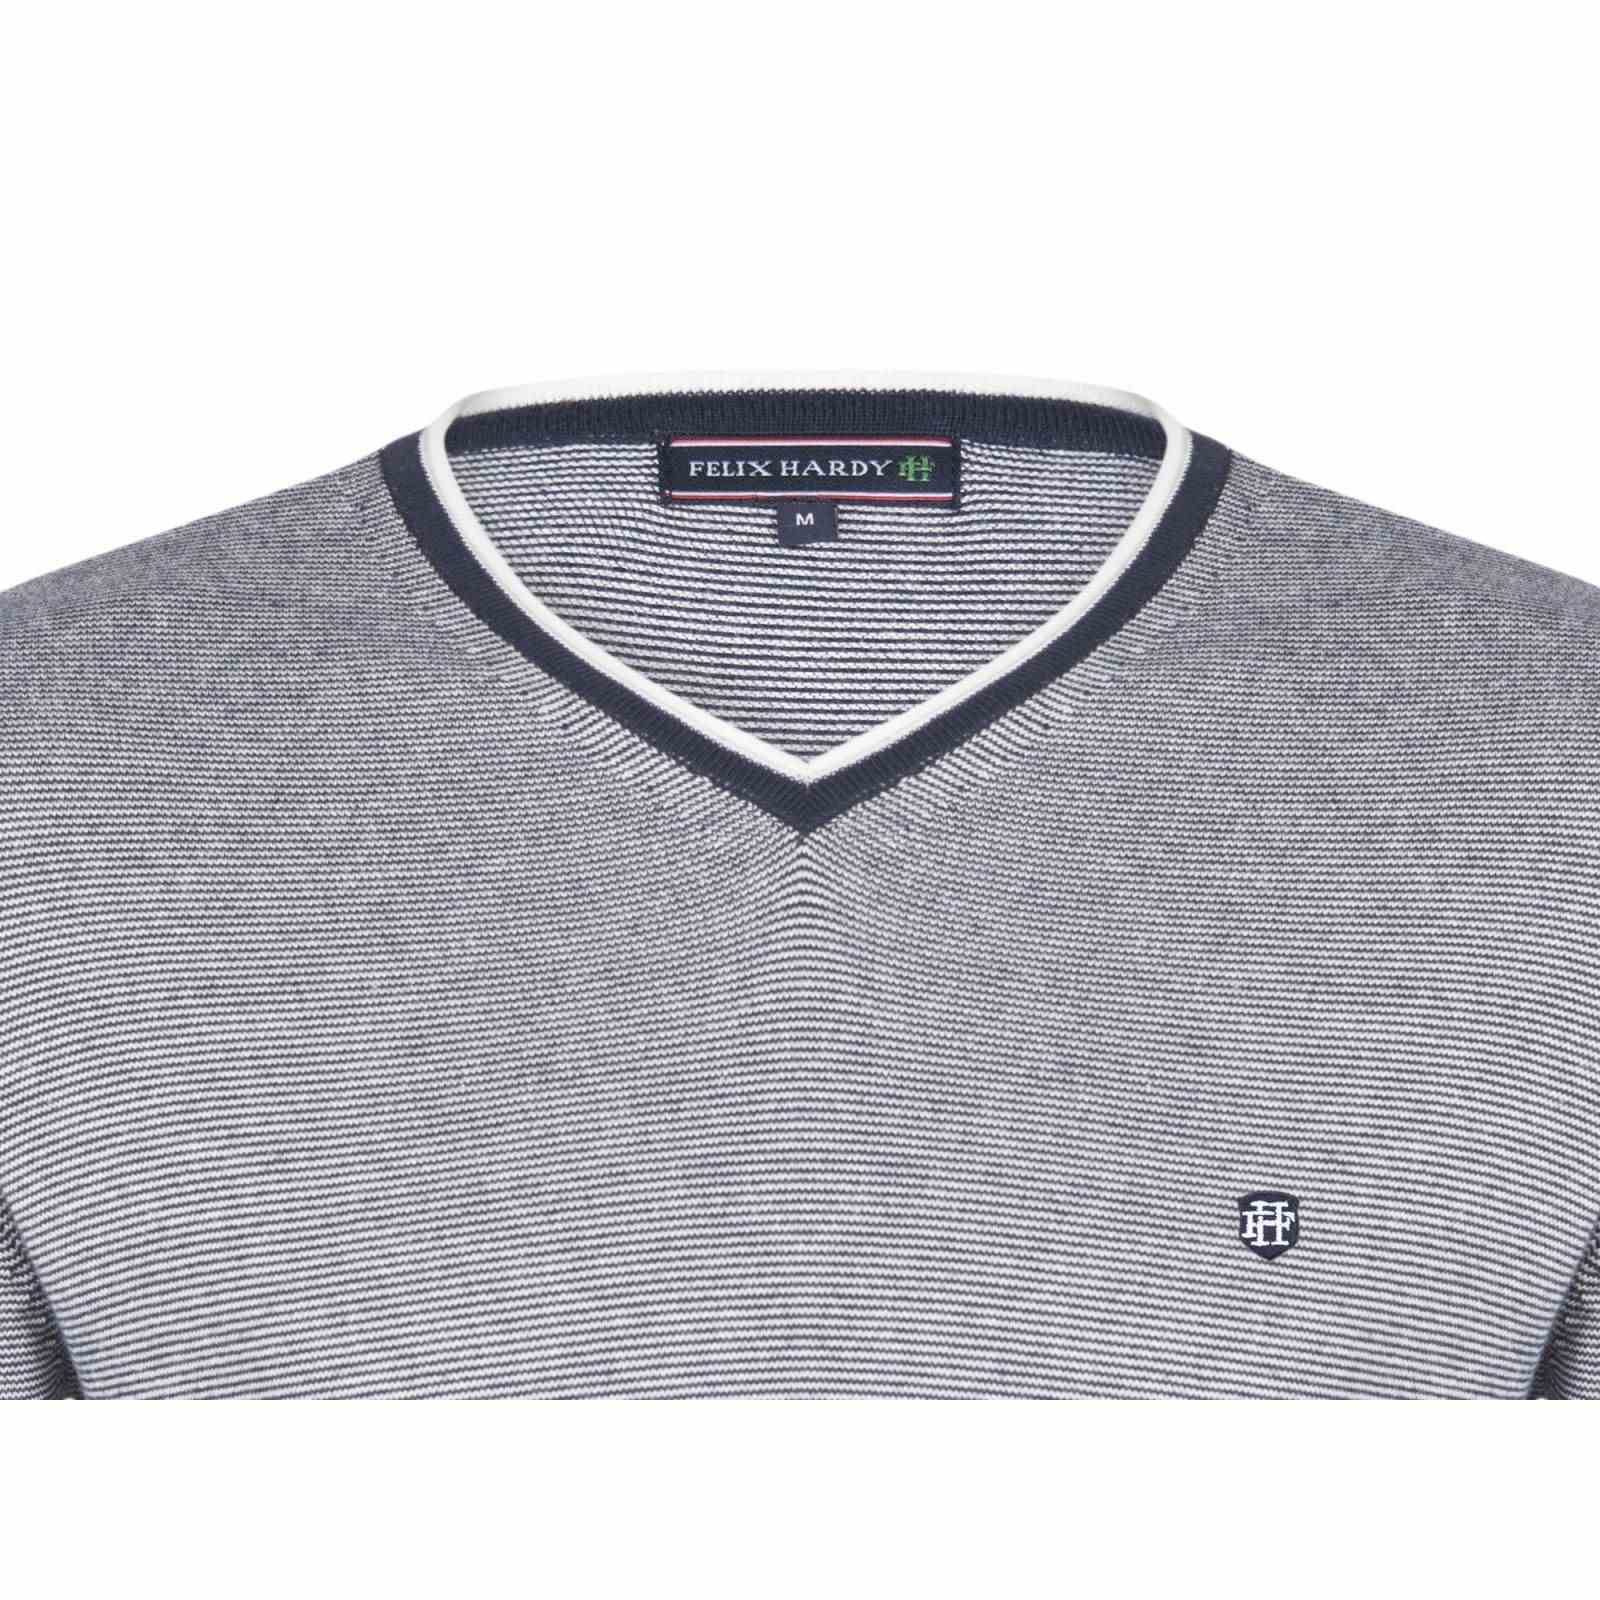 Felix V Clair Hardy Homme PullGris nO0kwP